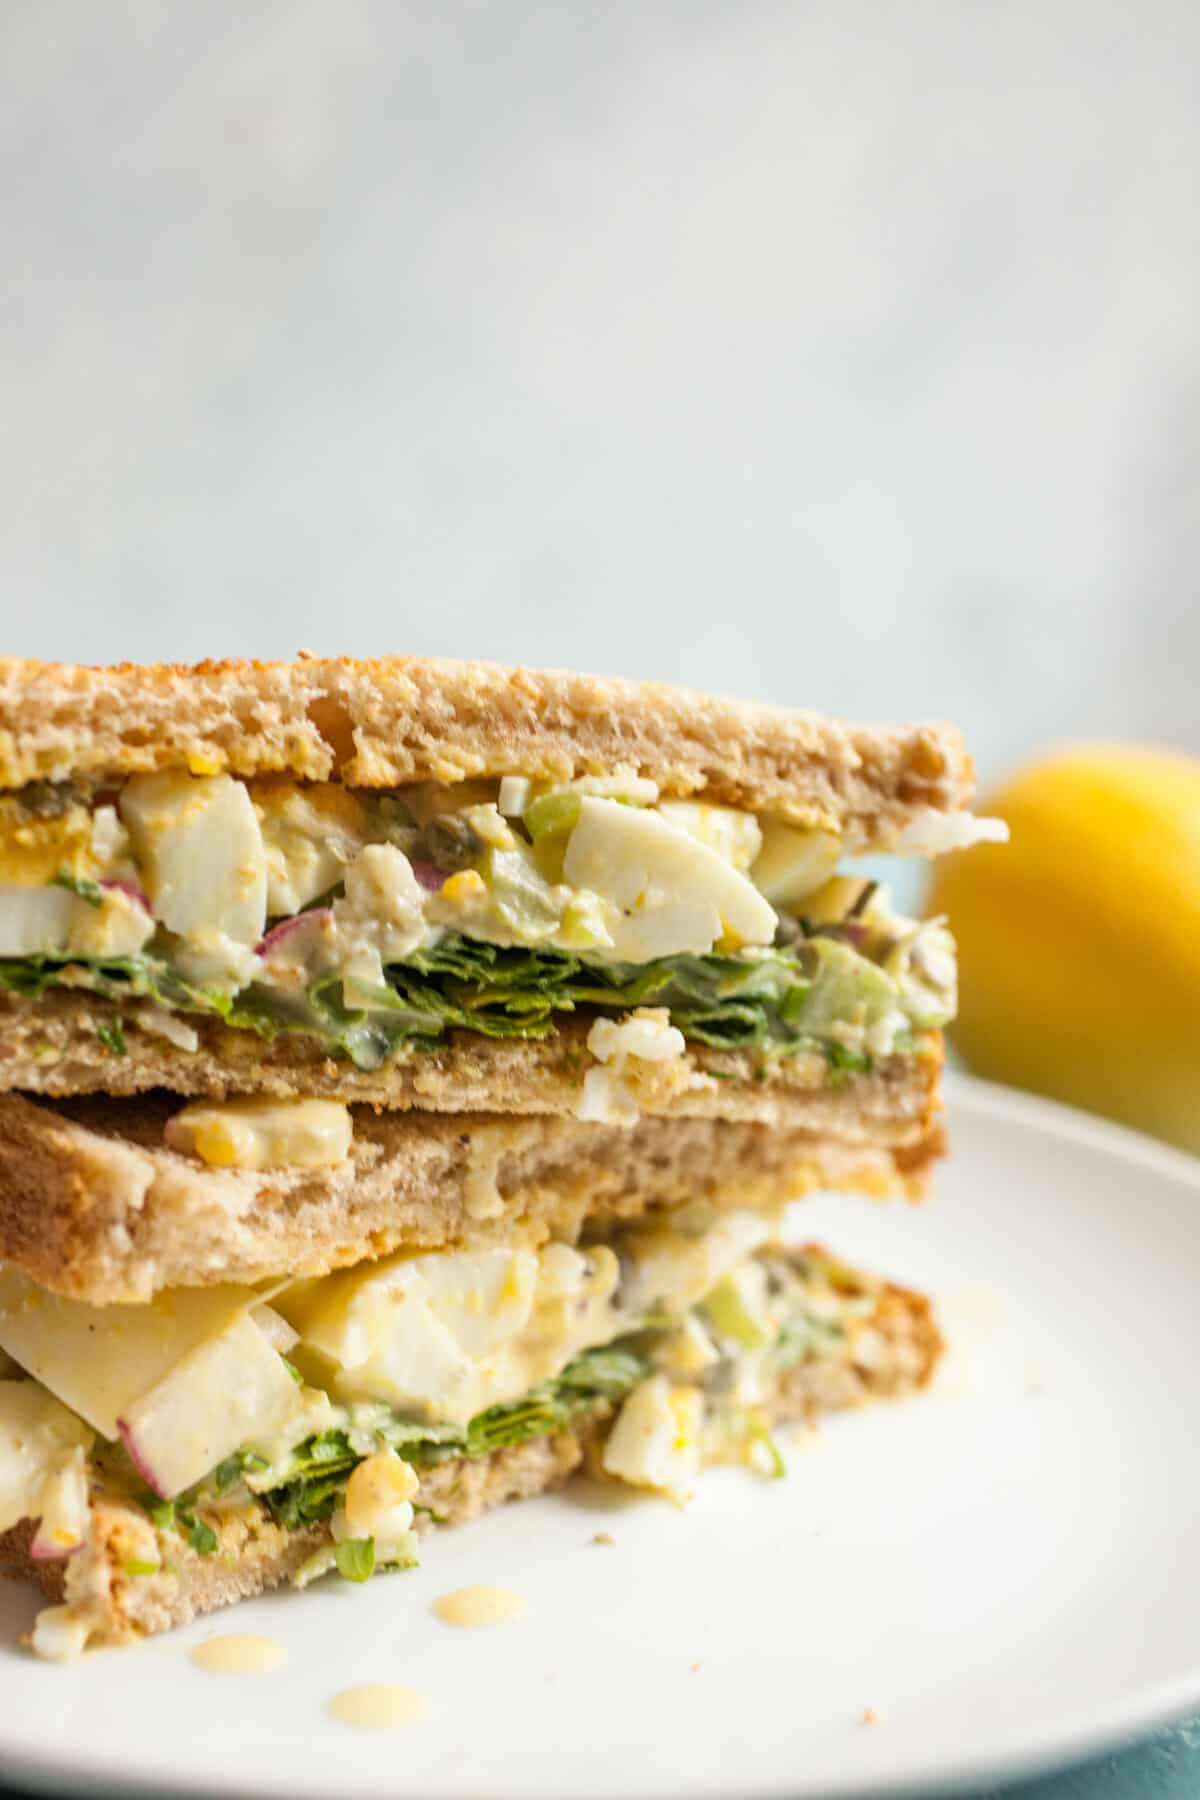 Lemon Caper Egg Salad: Egg salad can be so delicious if you make it right. This version is bright and crunchy with just enough dressing to keep it together. Serve it on white bread with some fresh arugula!   macheesmo.com